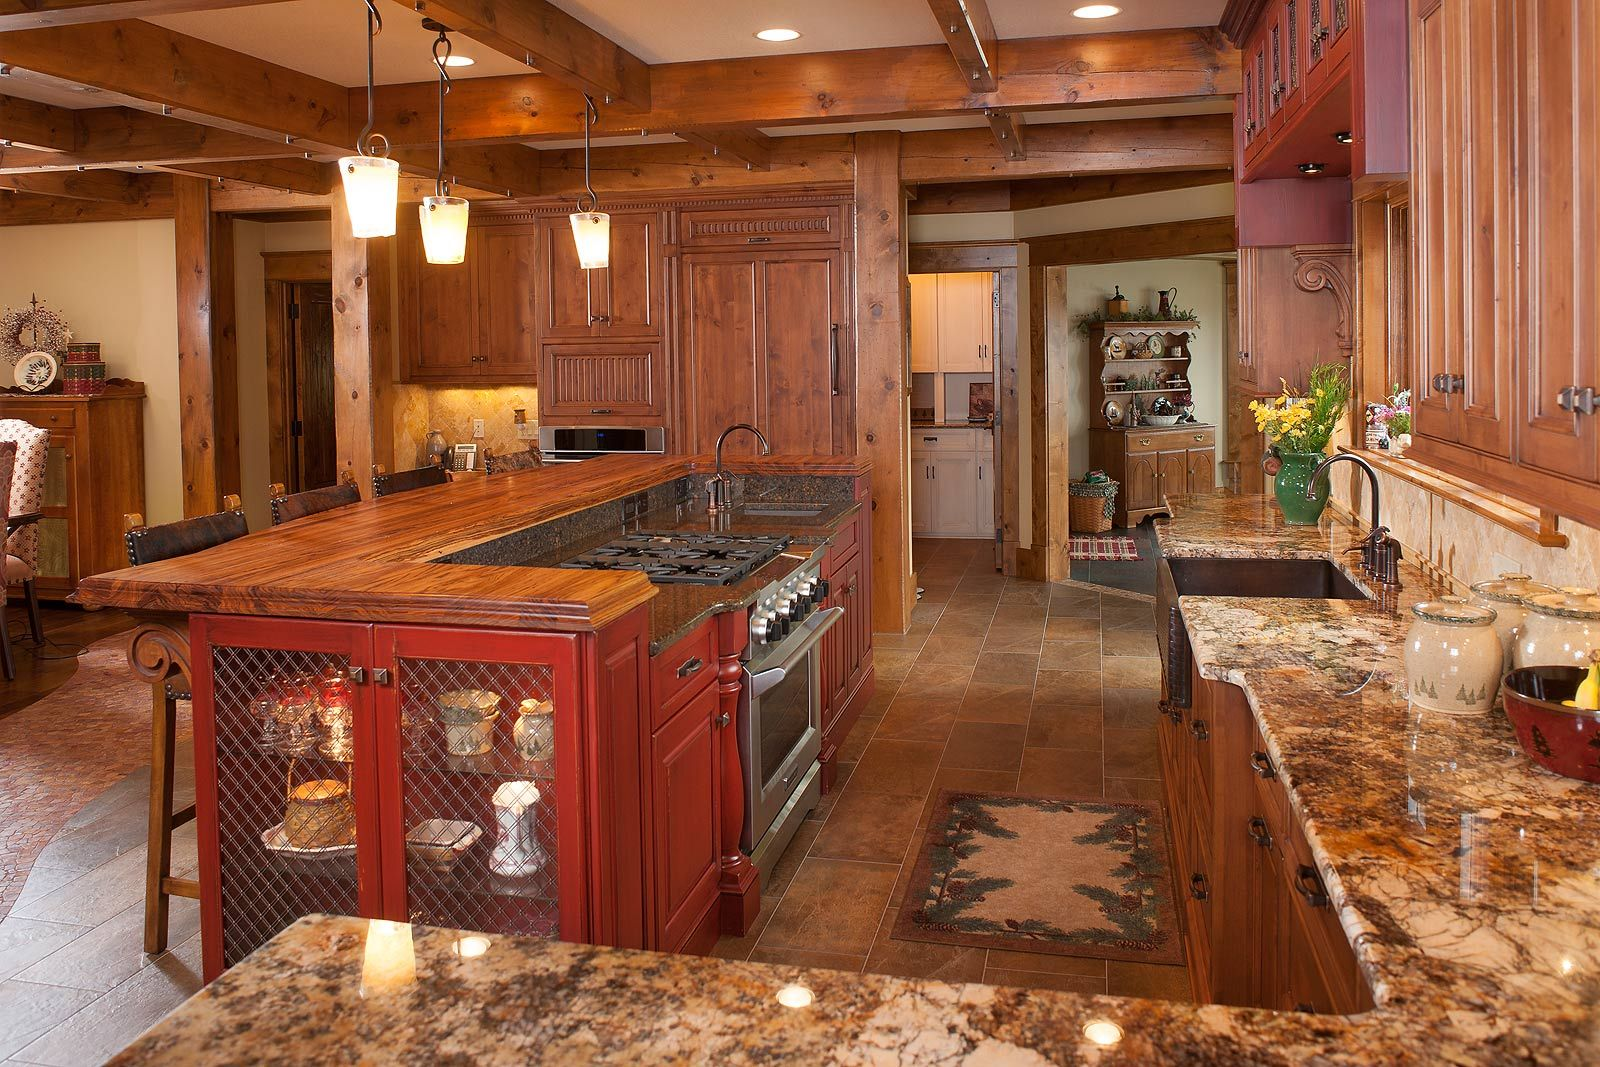 Log Cabin Kitchen Islands Rustic Kitchen Island For Rustic